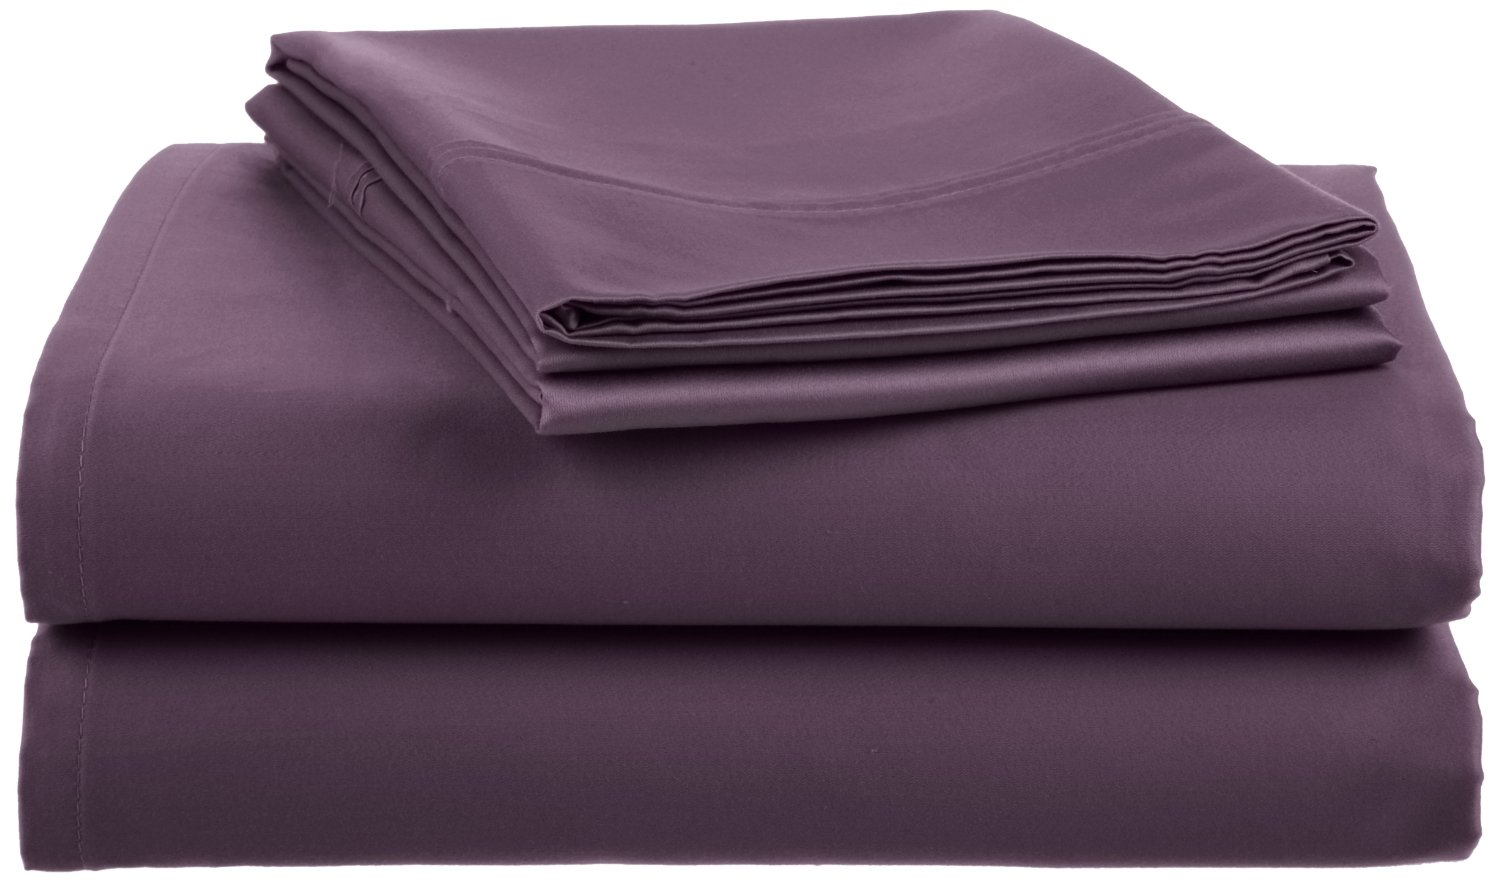 Crowning Touch 500 Thread Count Wrinkle-Resistant Cotton Sheet Set, King, Egg Plant